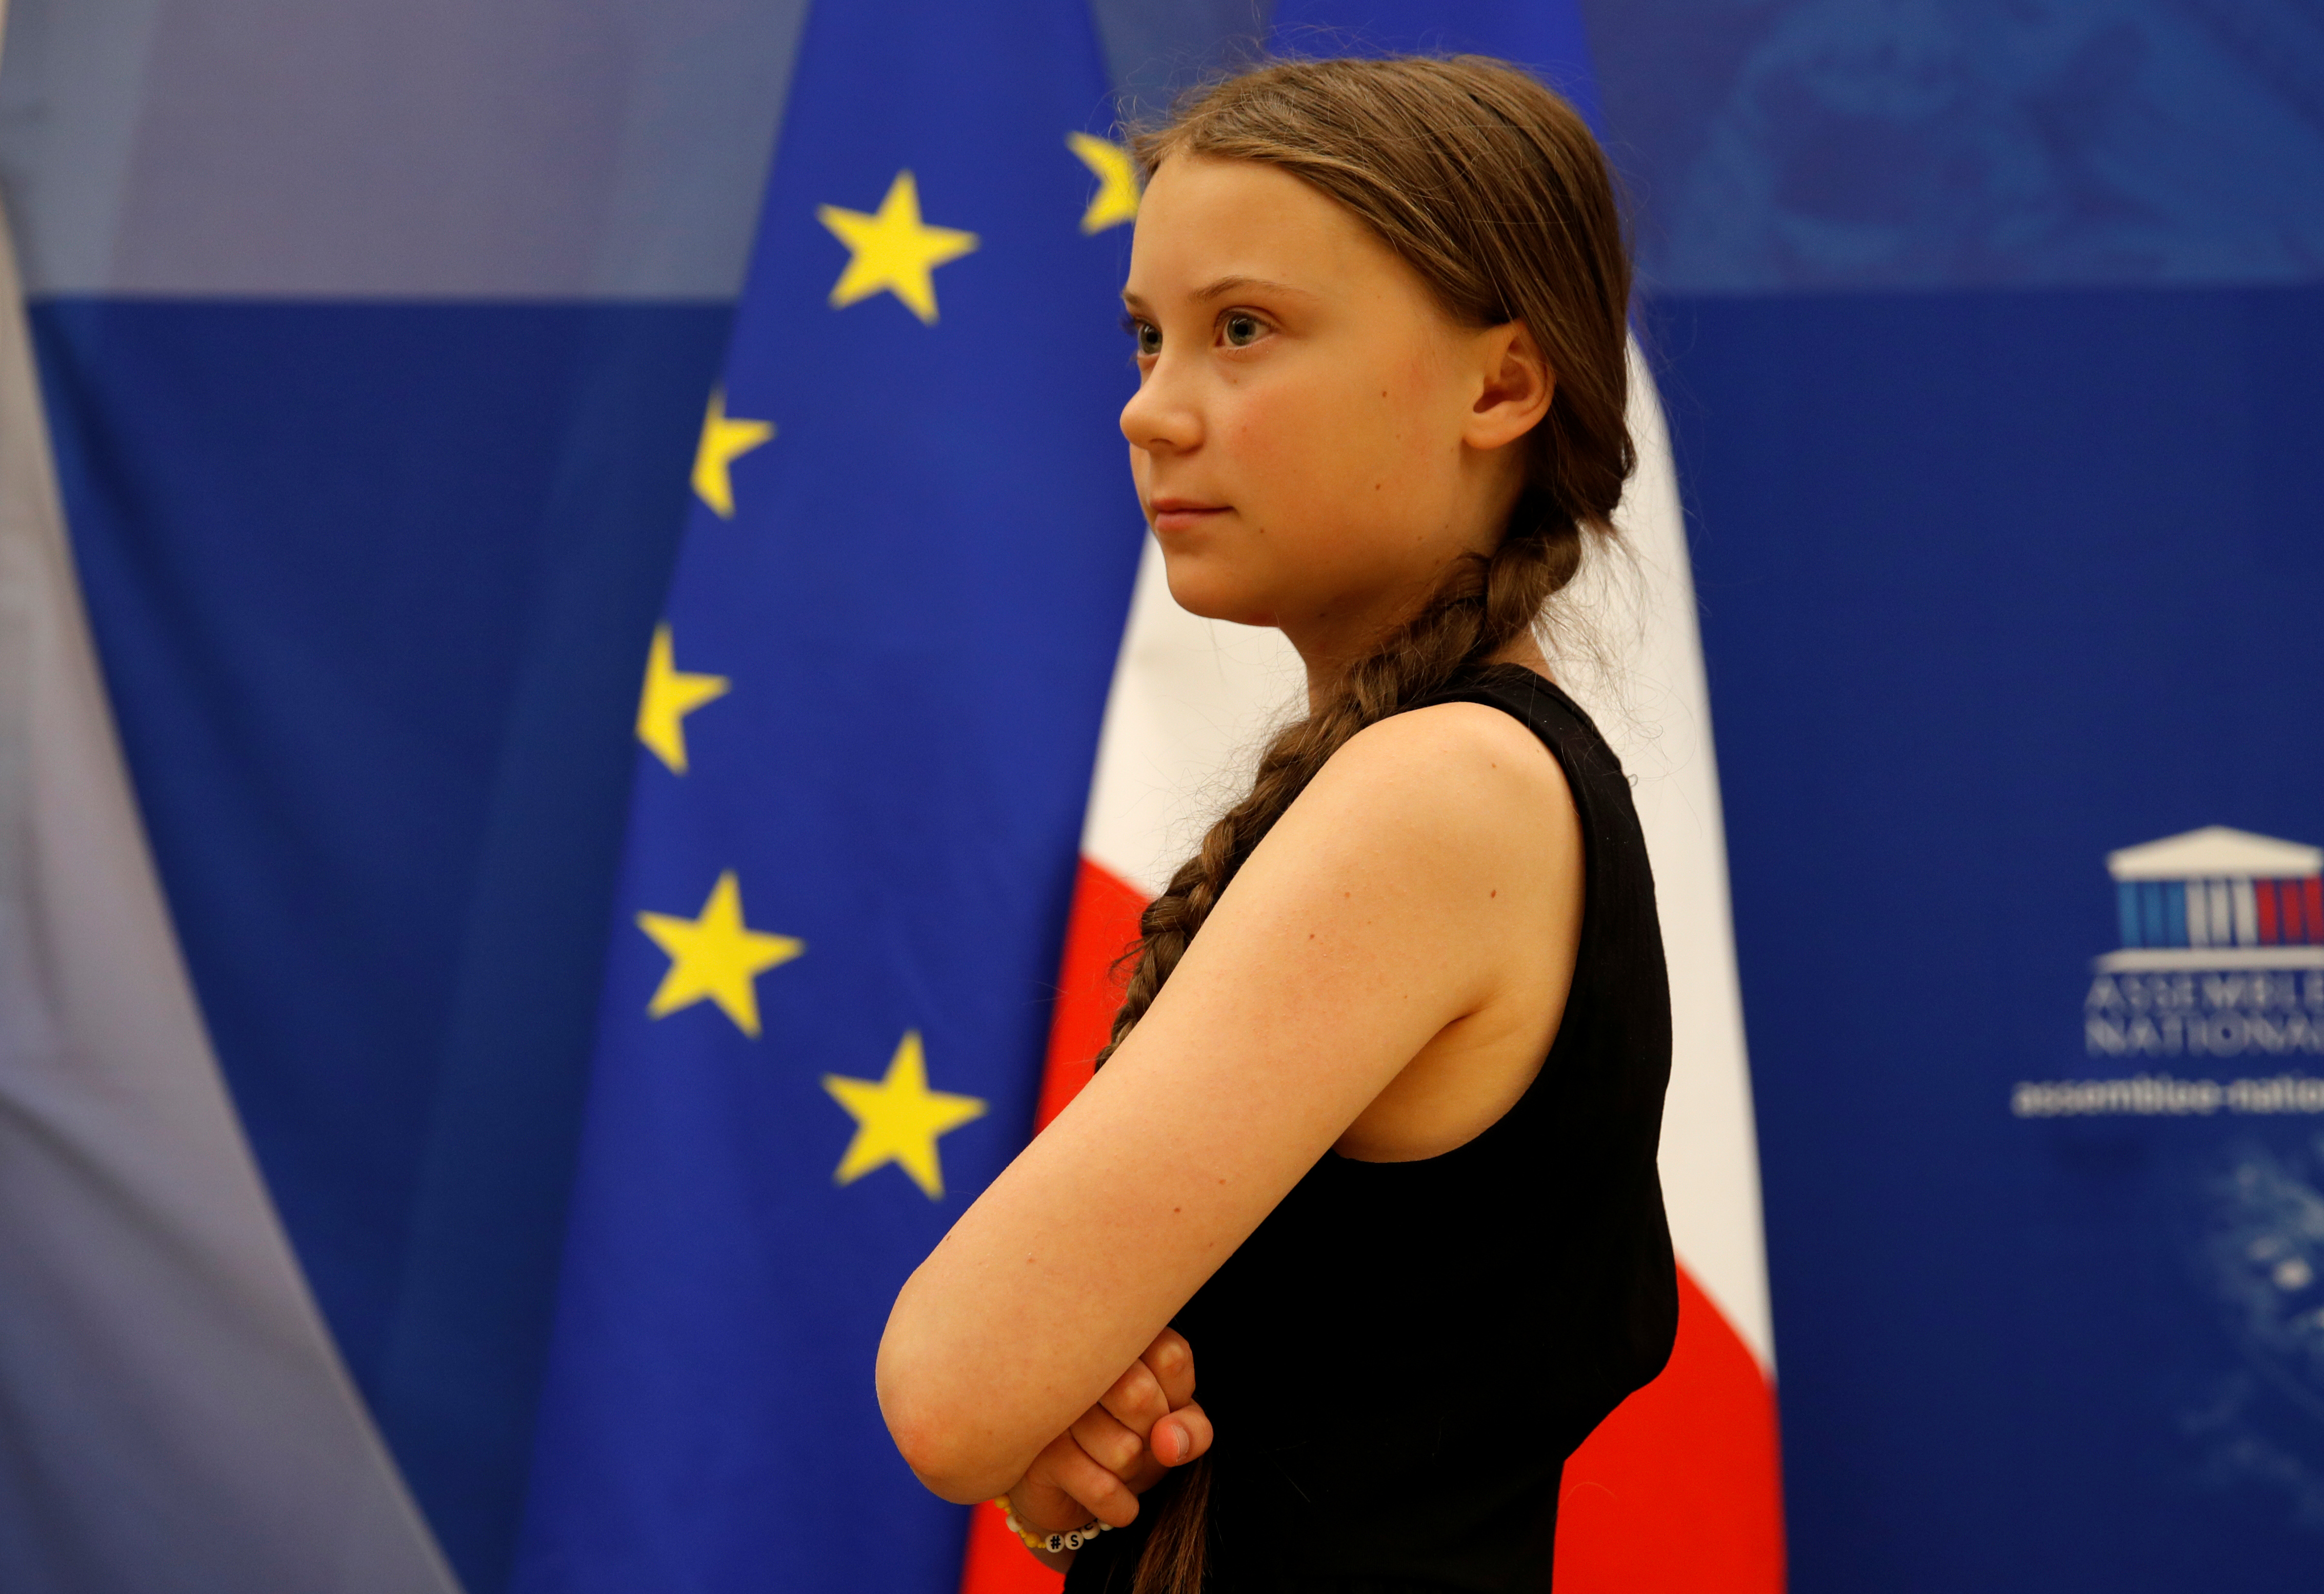 Swedish environmental activist Greta Thunberg leaves after a debate with French parliament members at the National Assembly in Paris, France, July 23, 2019.  REUTERS/Philippe Wojazer